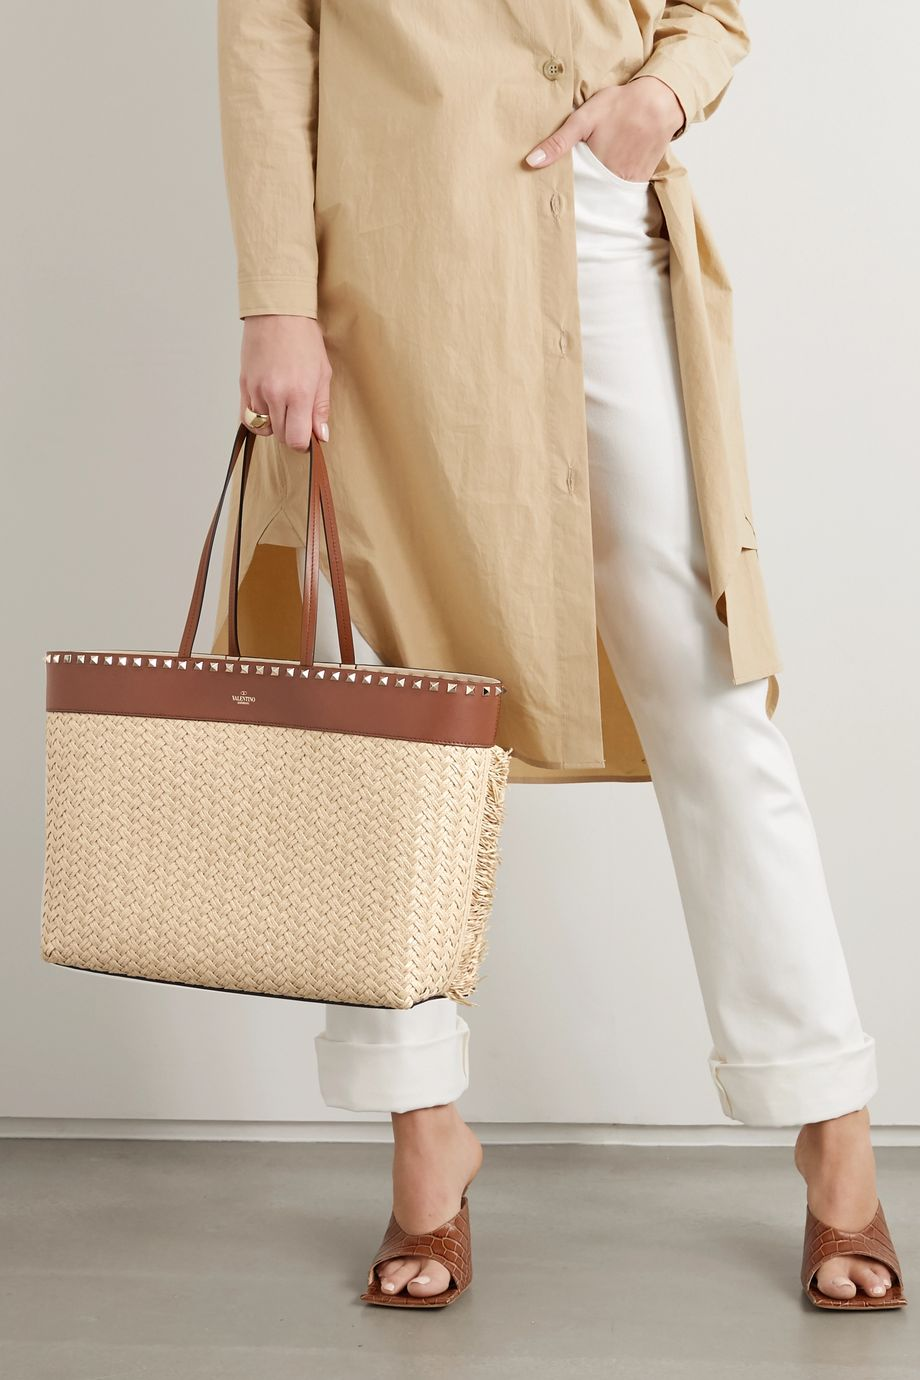 Valentino Valentino Garavani Rockstud medium leather-trimmed raffia tote